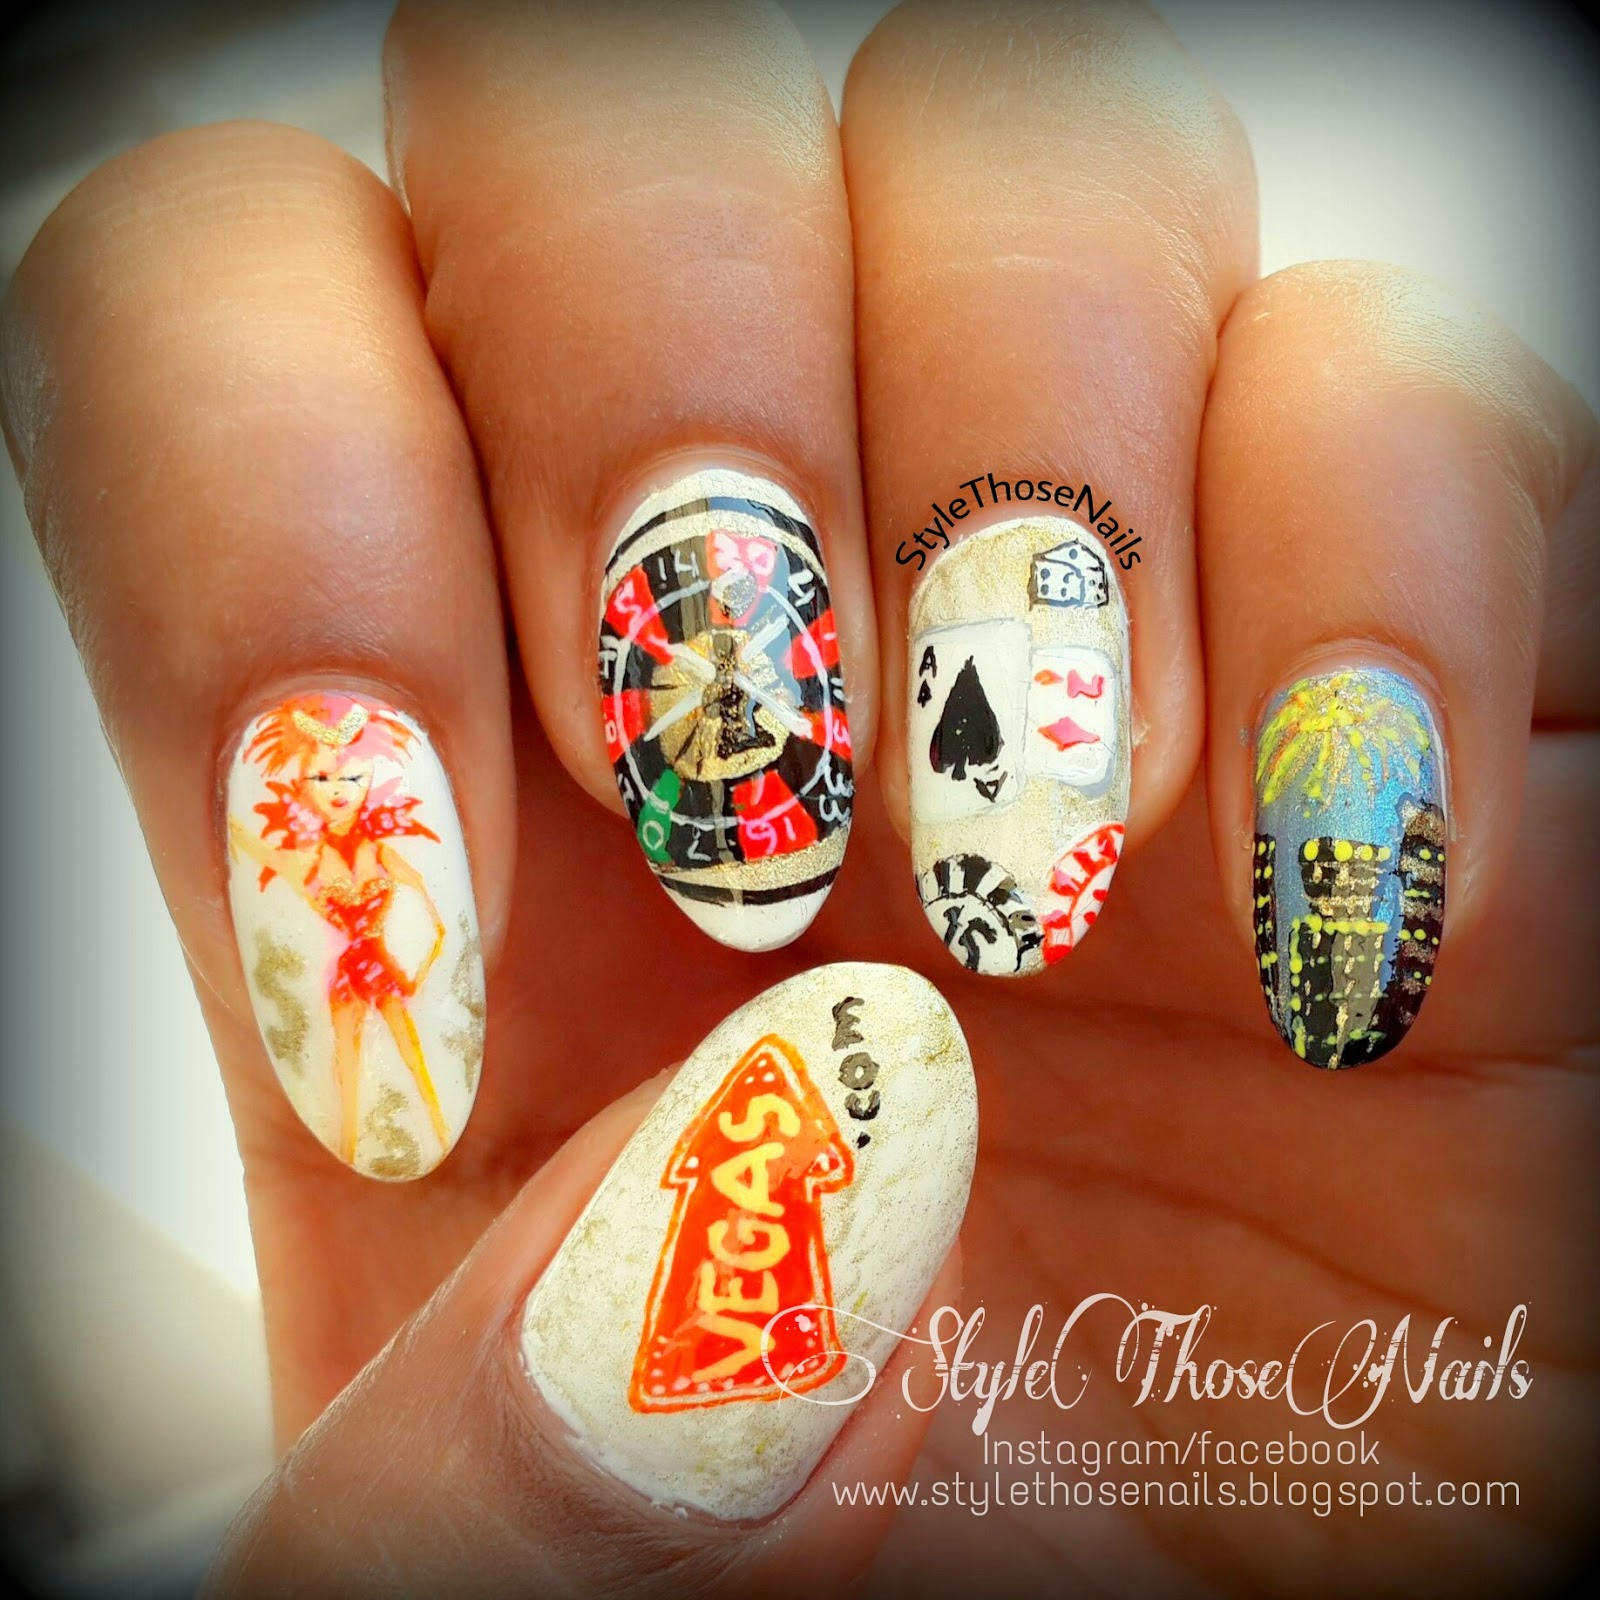 Nails las vegas beautify themselves with sweet nails style those nails night out in vegas a las vegas themed nail art prinsesfo Gallery